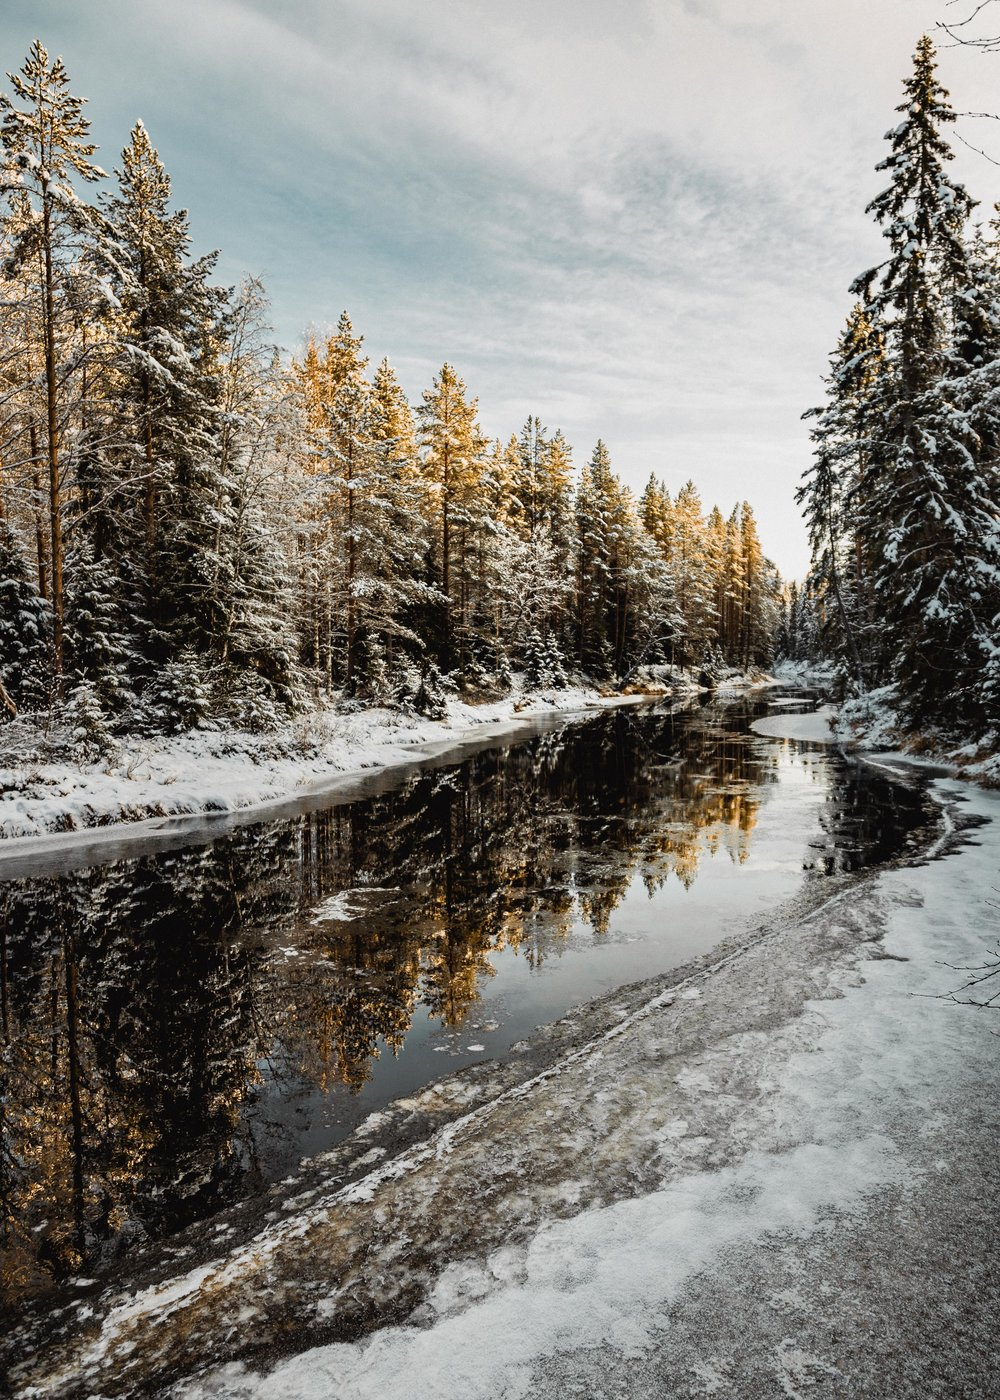 34-finland-winter-hiking-river-reflection-anna-elina-lahti-photographer.jpg